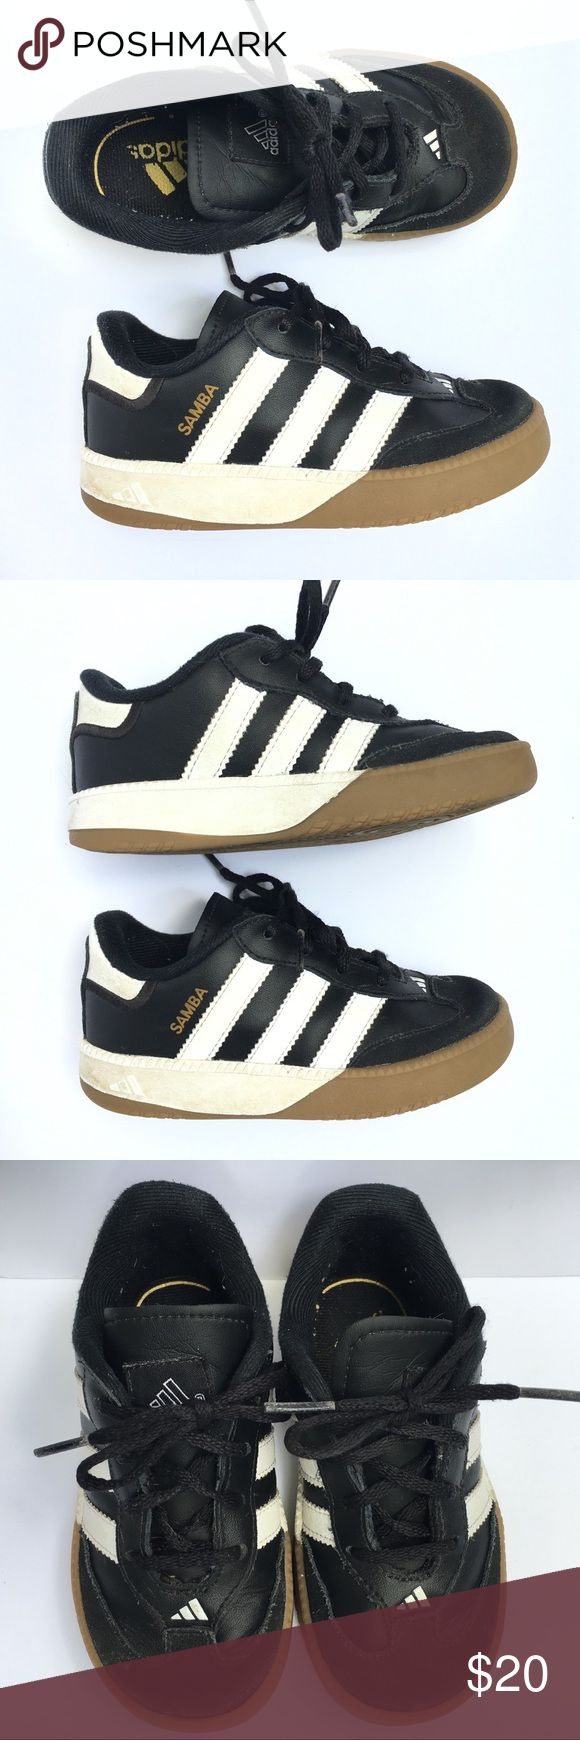 adidas shoes kids boys size 3 adidas gazelle shoes squeaky